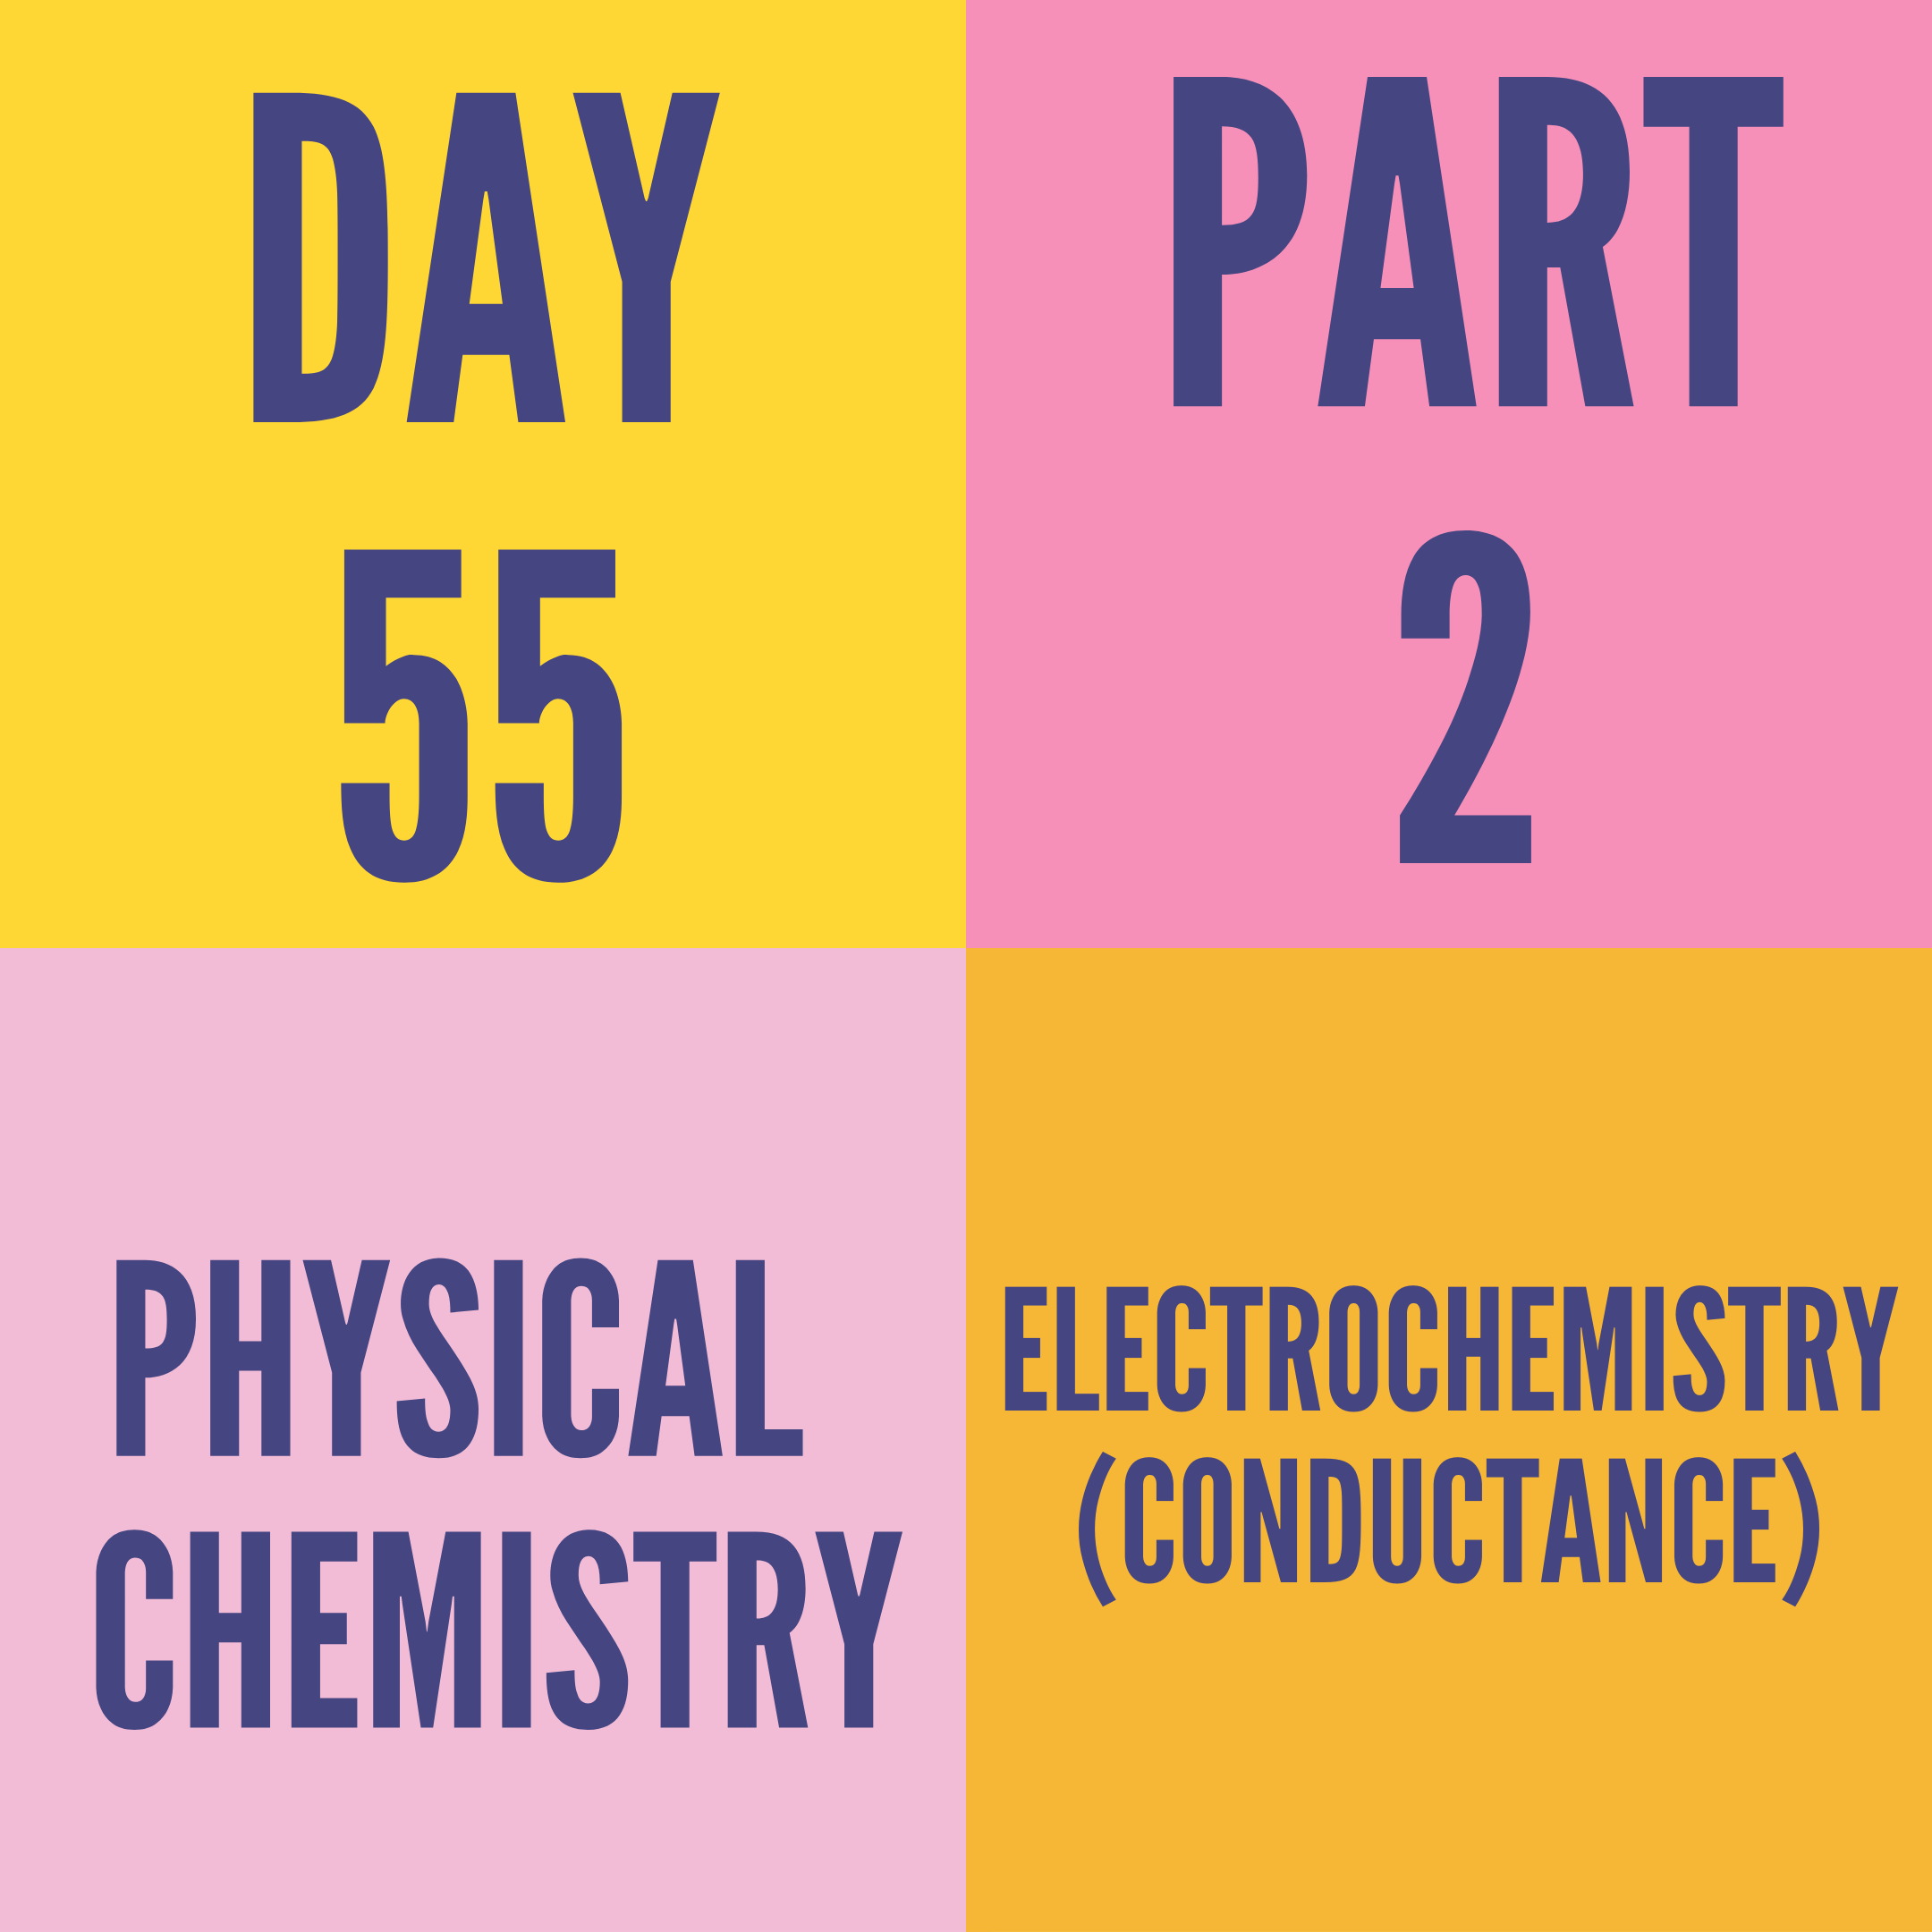 DAY-55 PART-2 ELECTROCHEMISTRY (CONDUCTANCE)